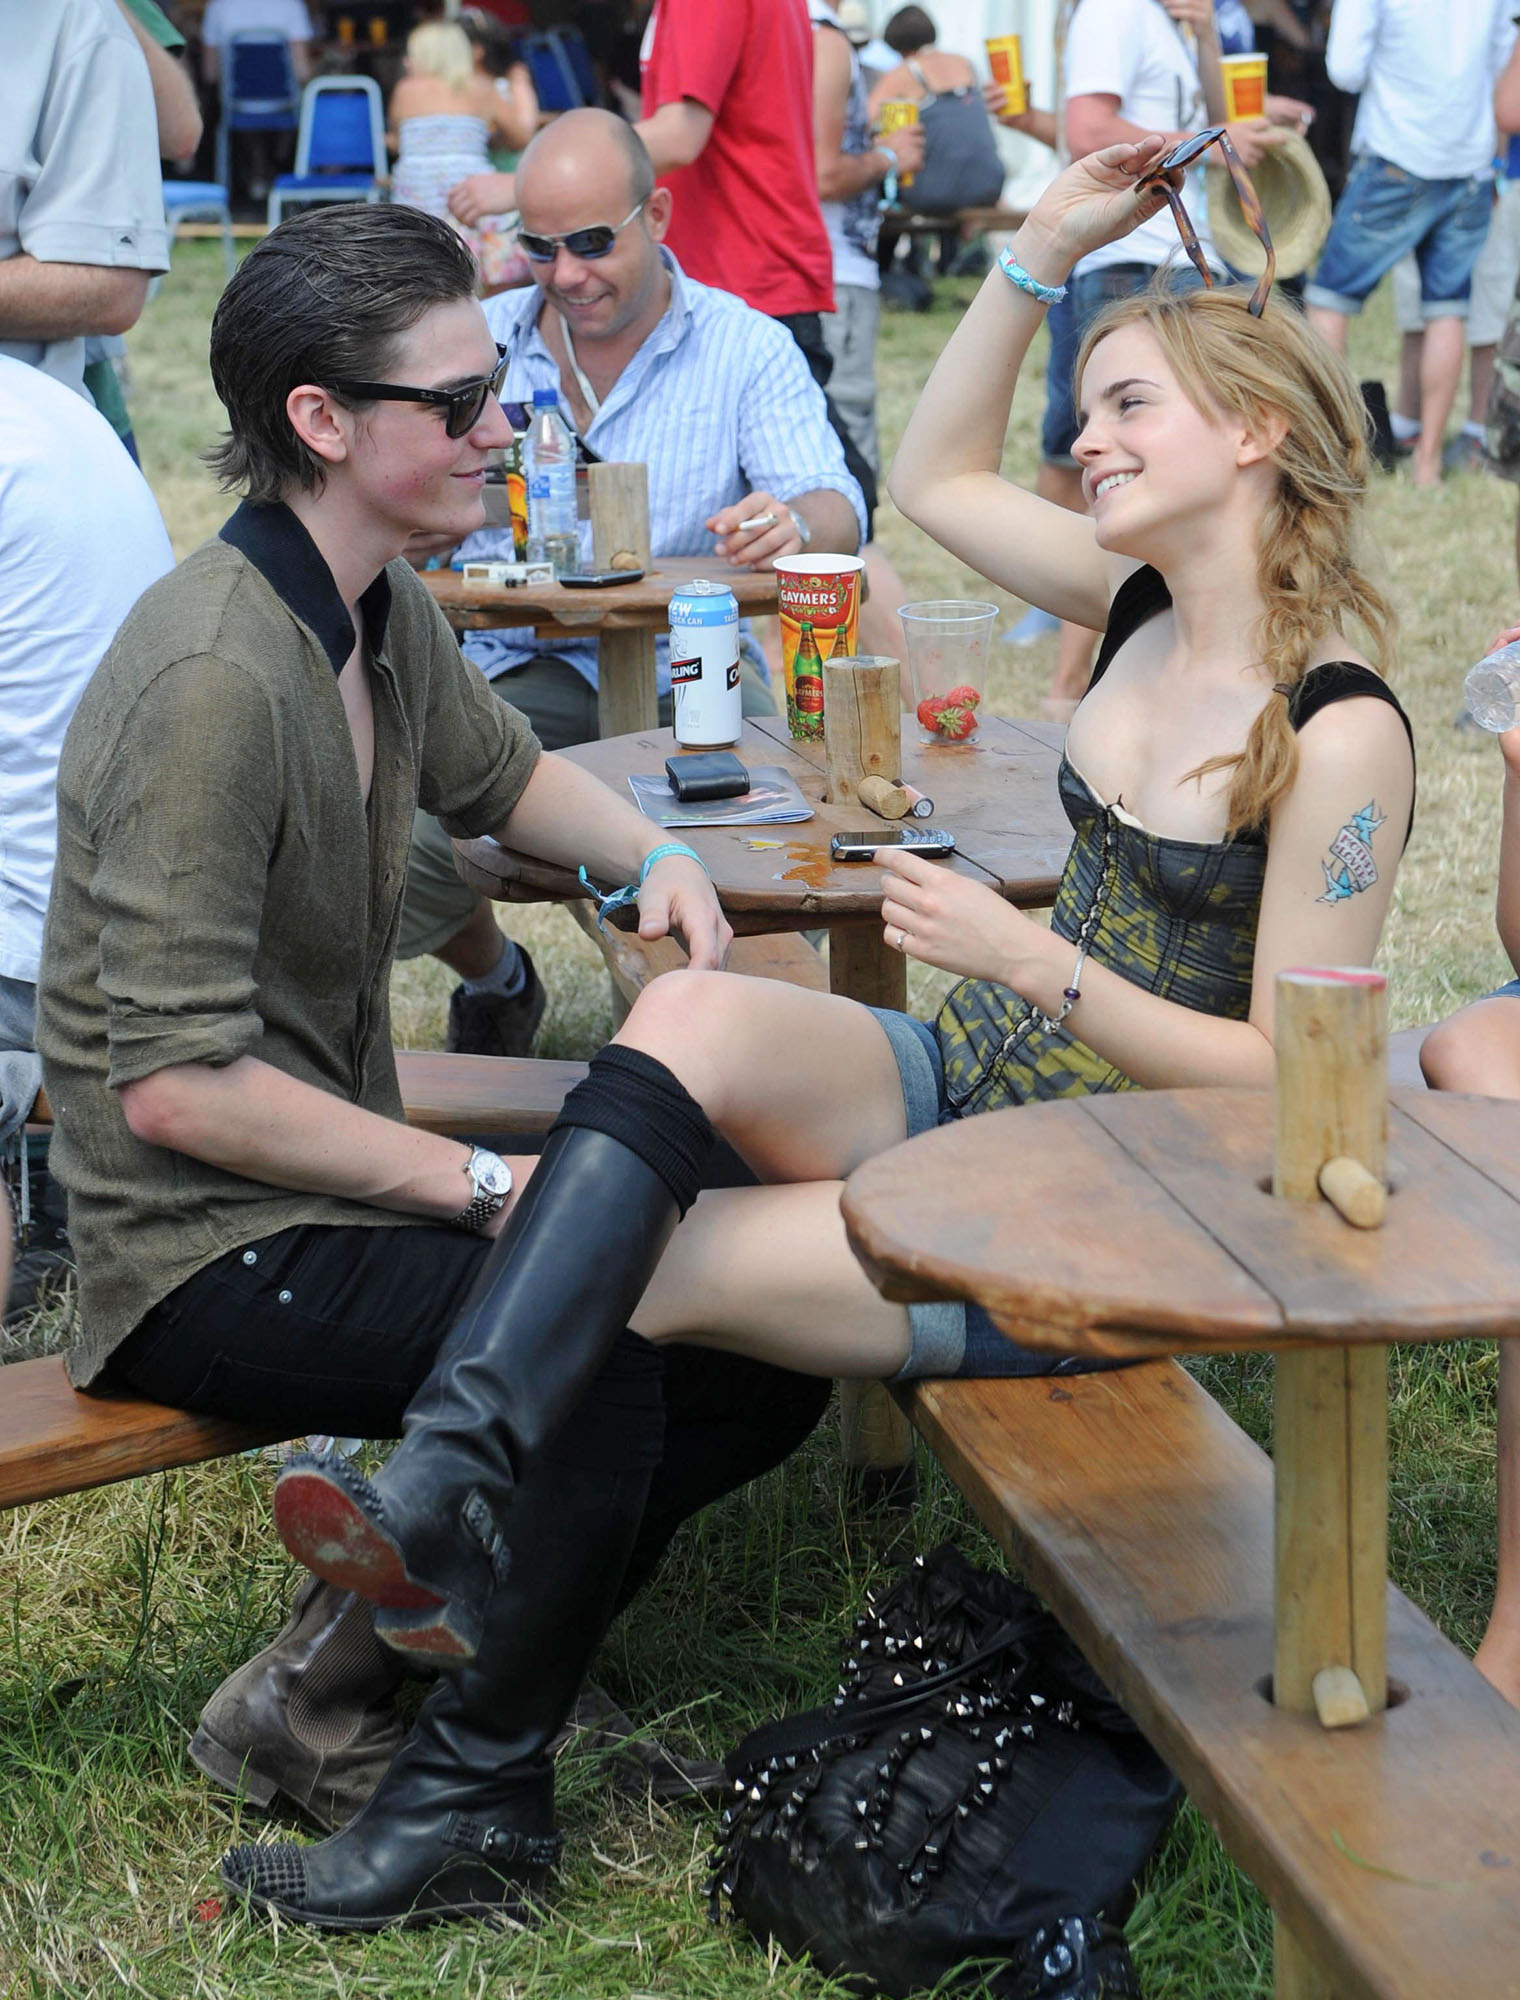 2010 Glastonbury موسیقی Festival in Somerset, England (25.06.10) [HQ]